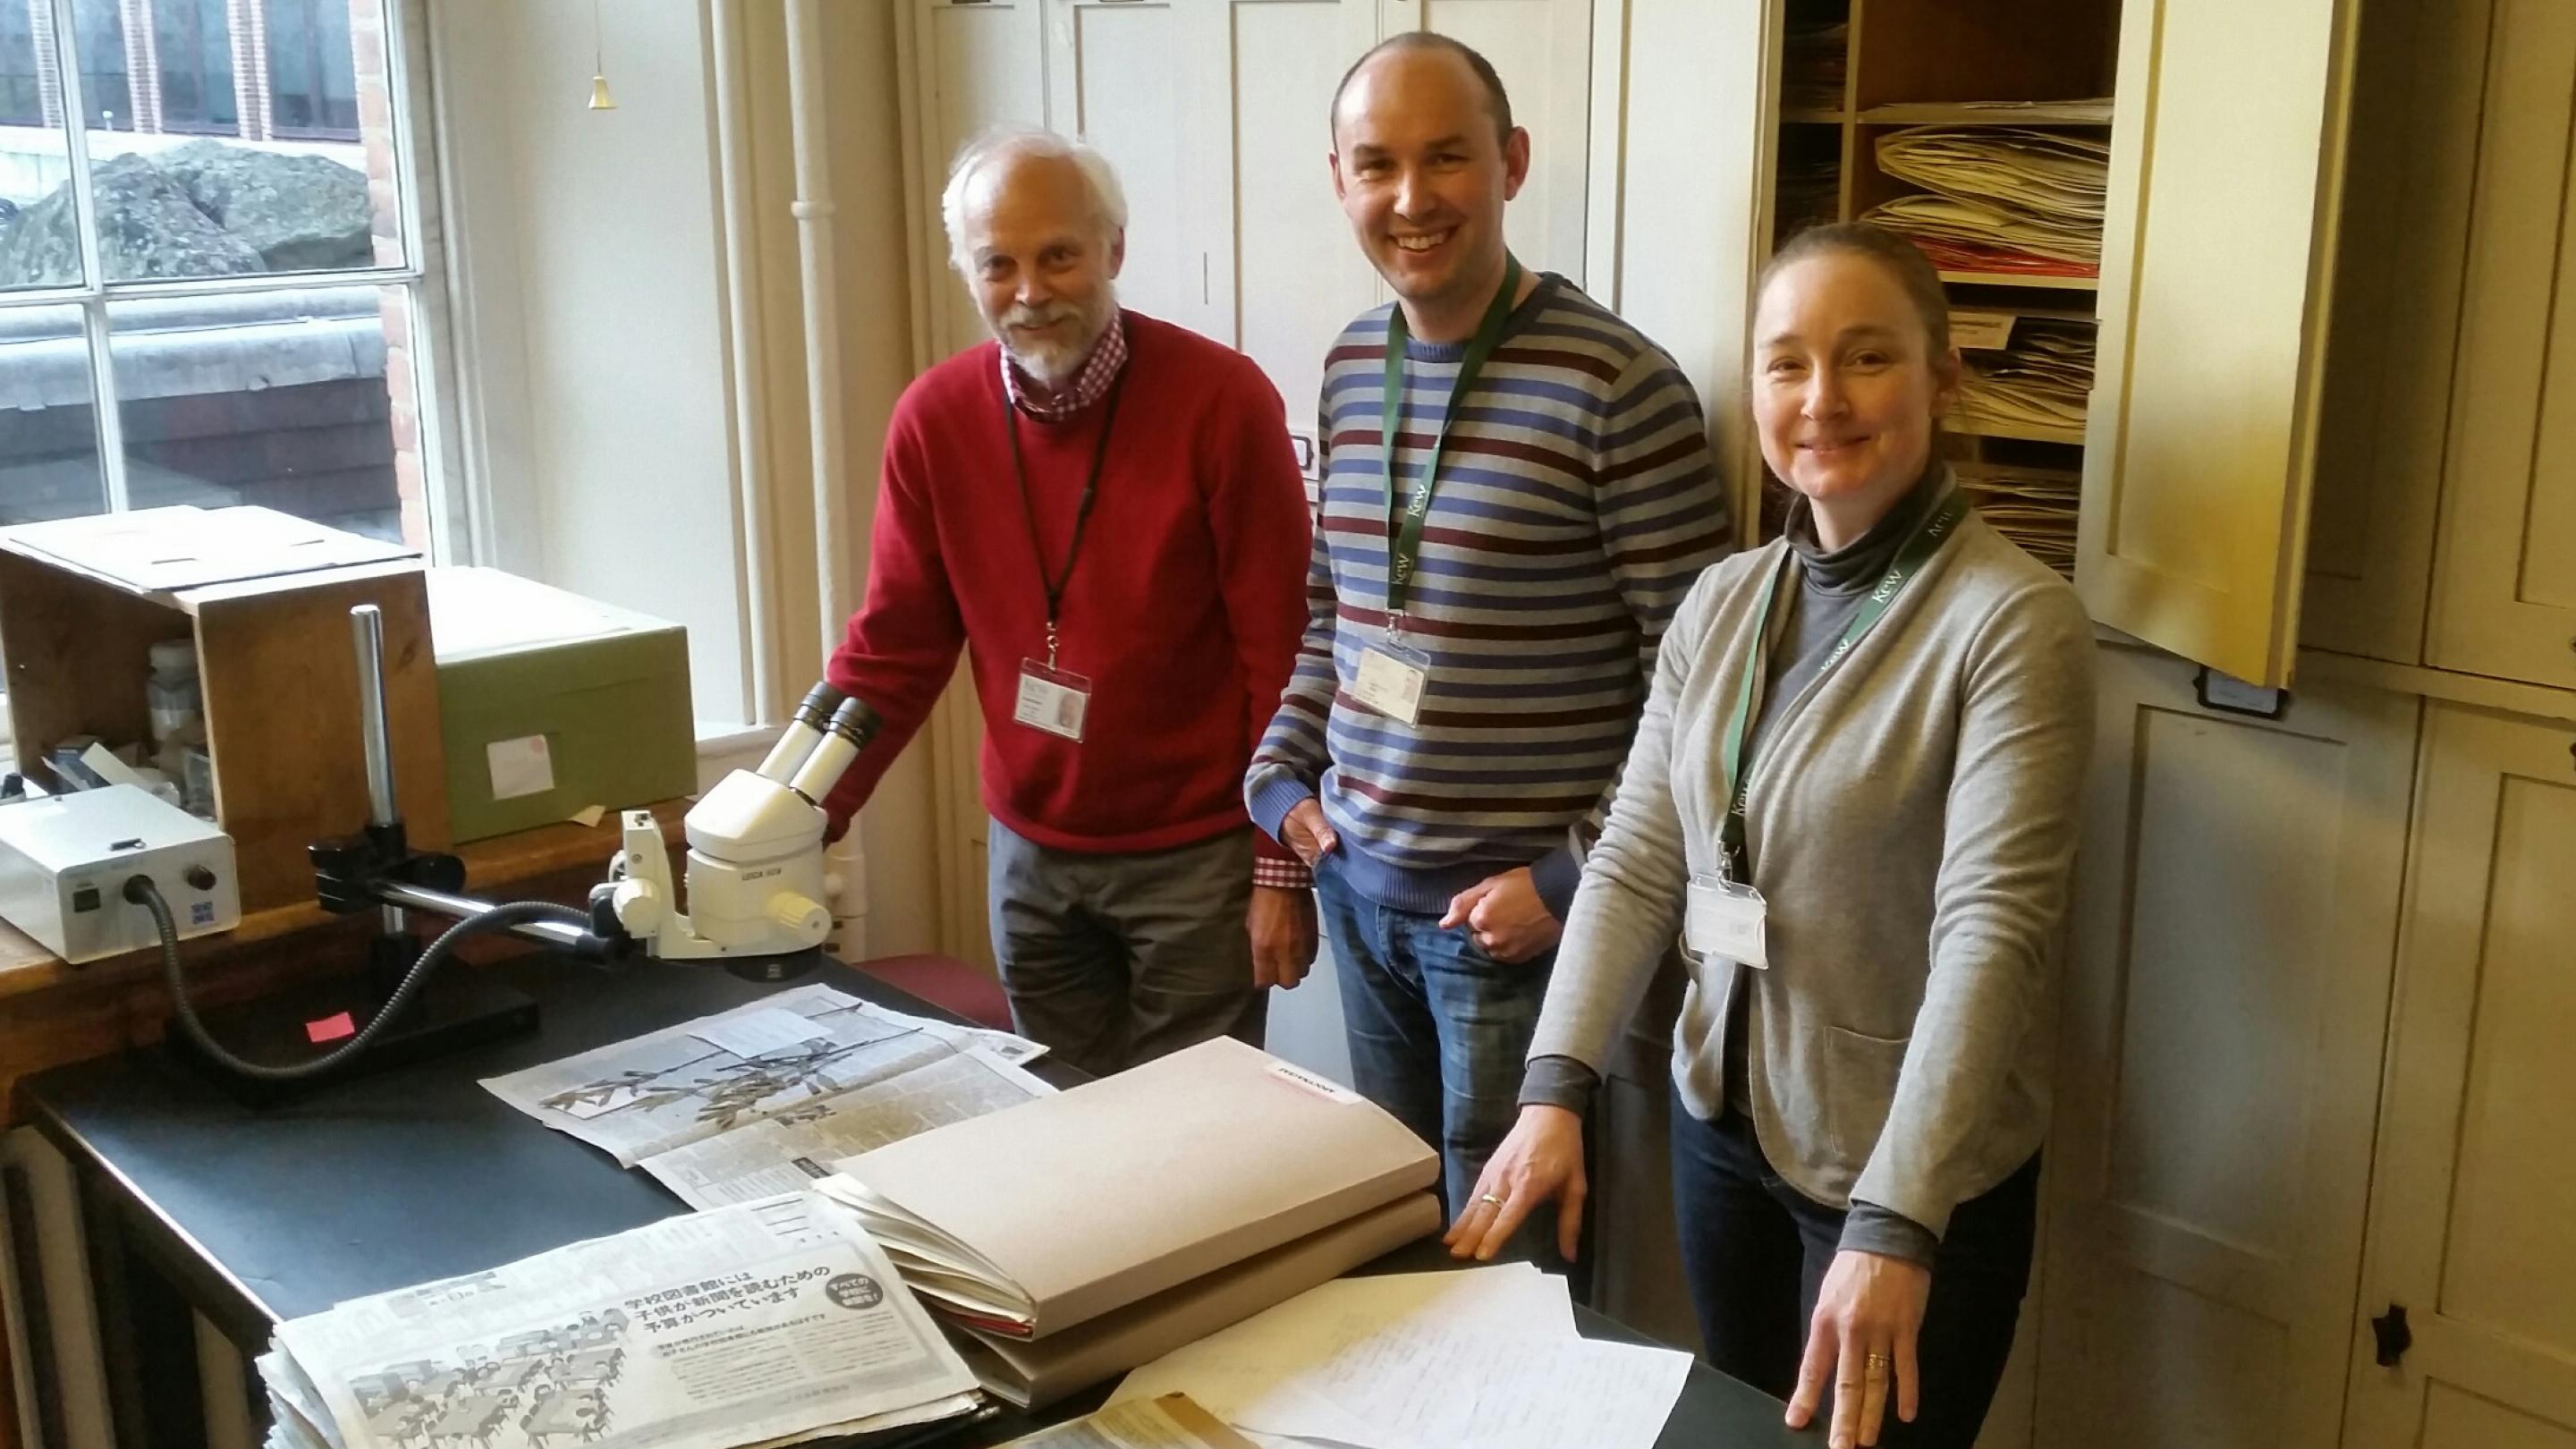 Image showing The top new species scorers at Kew for 2015 all with over 20 species published. Left to right: John Wood, 25 new convolvulaceae; Ian Darbyshire, >20 African acanthaceae, and Eve Lucas, >20 Brazilian myrtaceae.